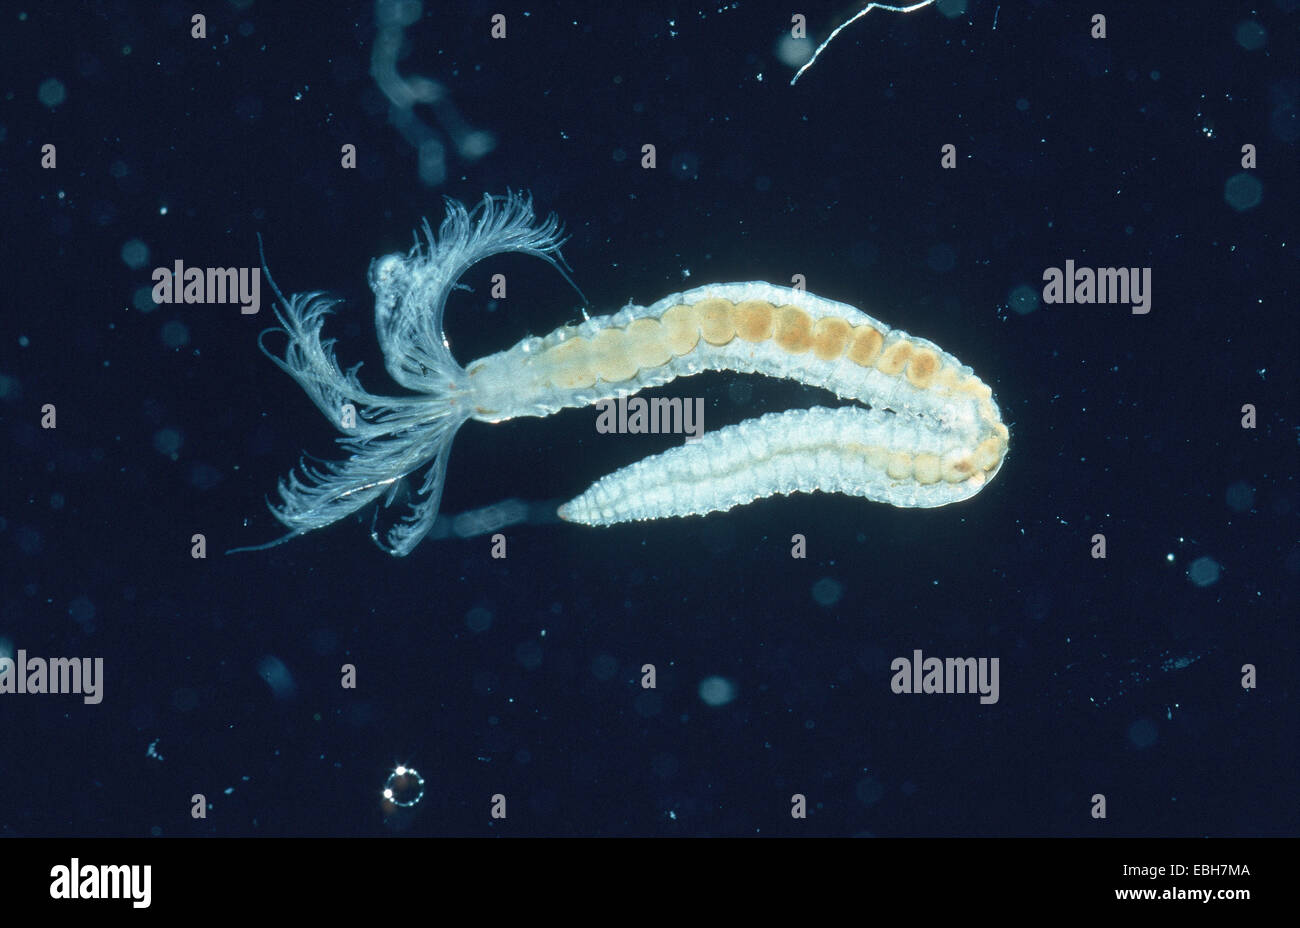 Sabella Mobili Worm Fabricia Sabella Stock Photo 75981930 Alamy